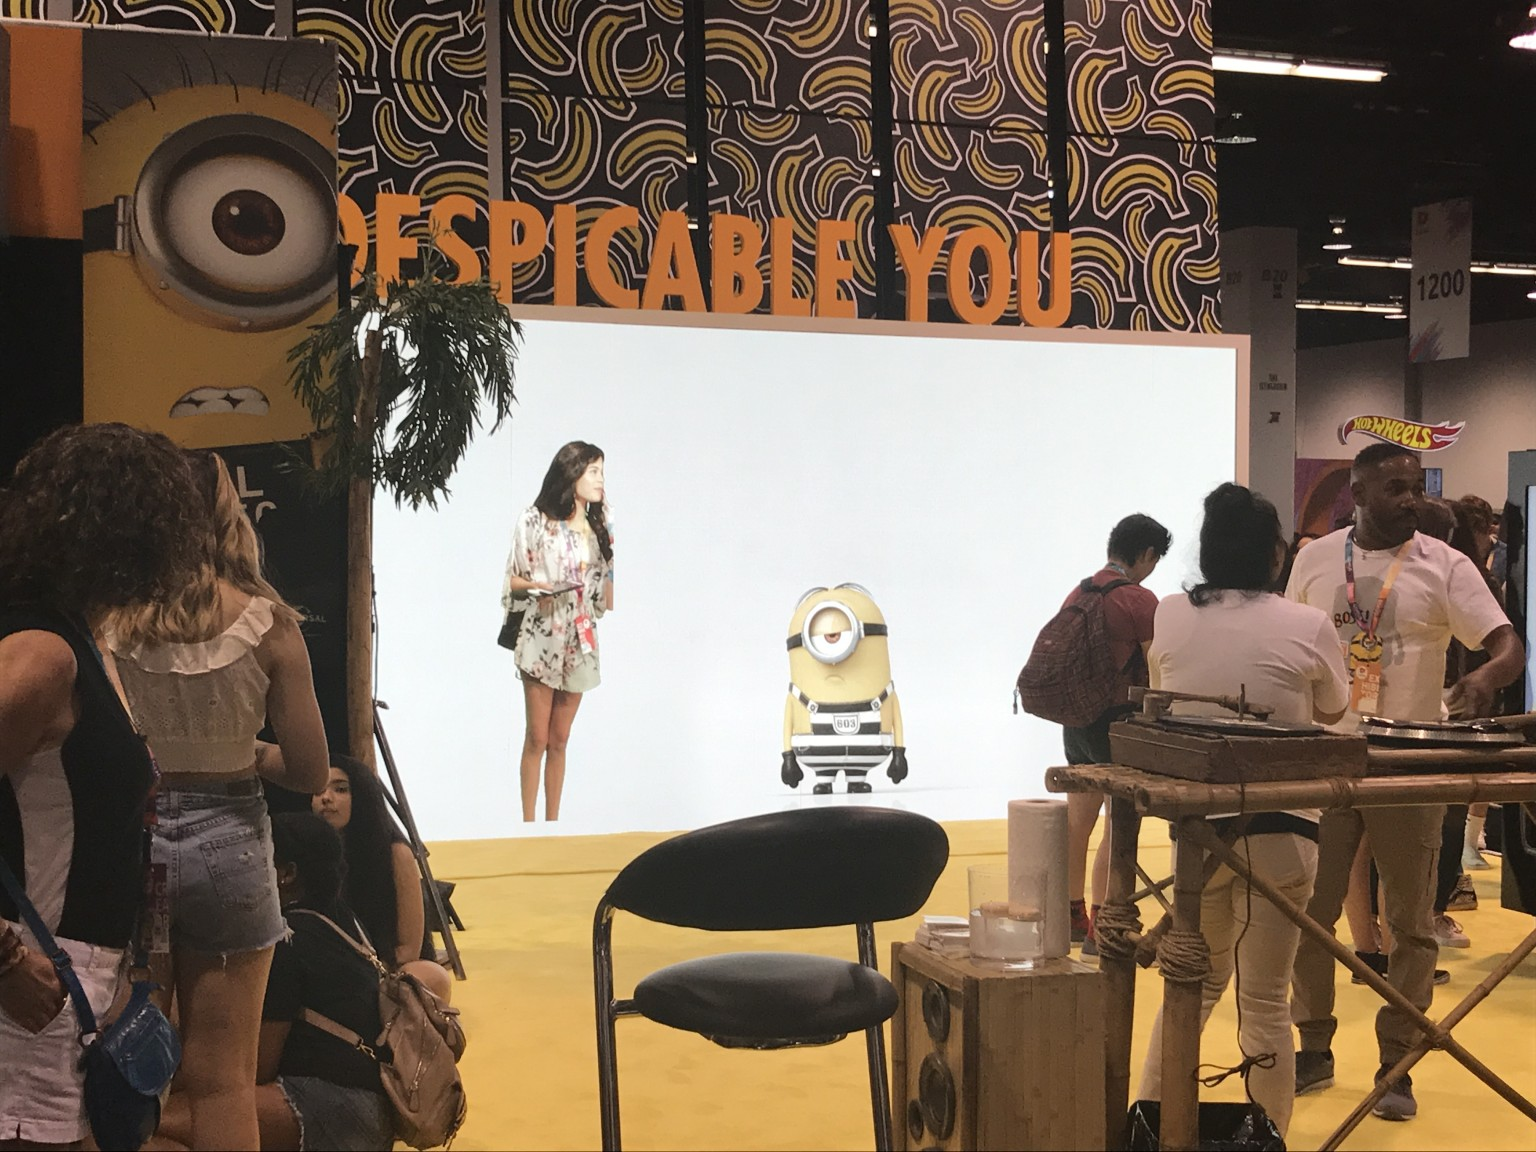 Despicable Me 3 Brand Activation at Vidcon 2017